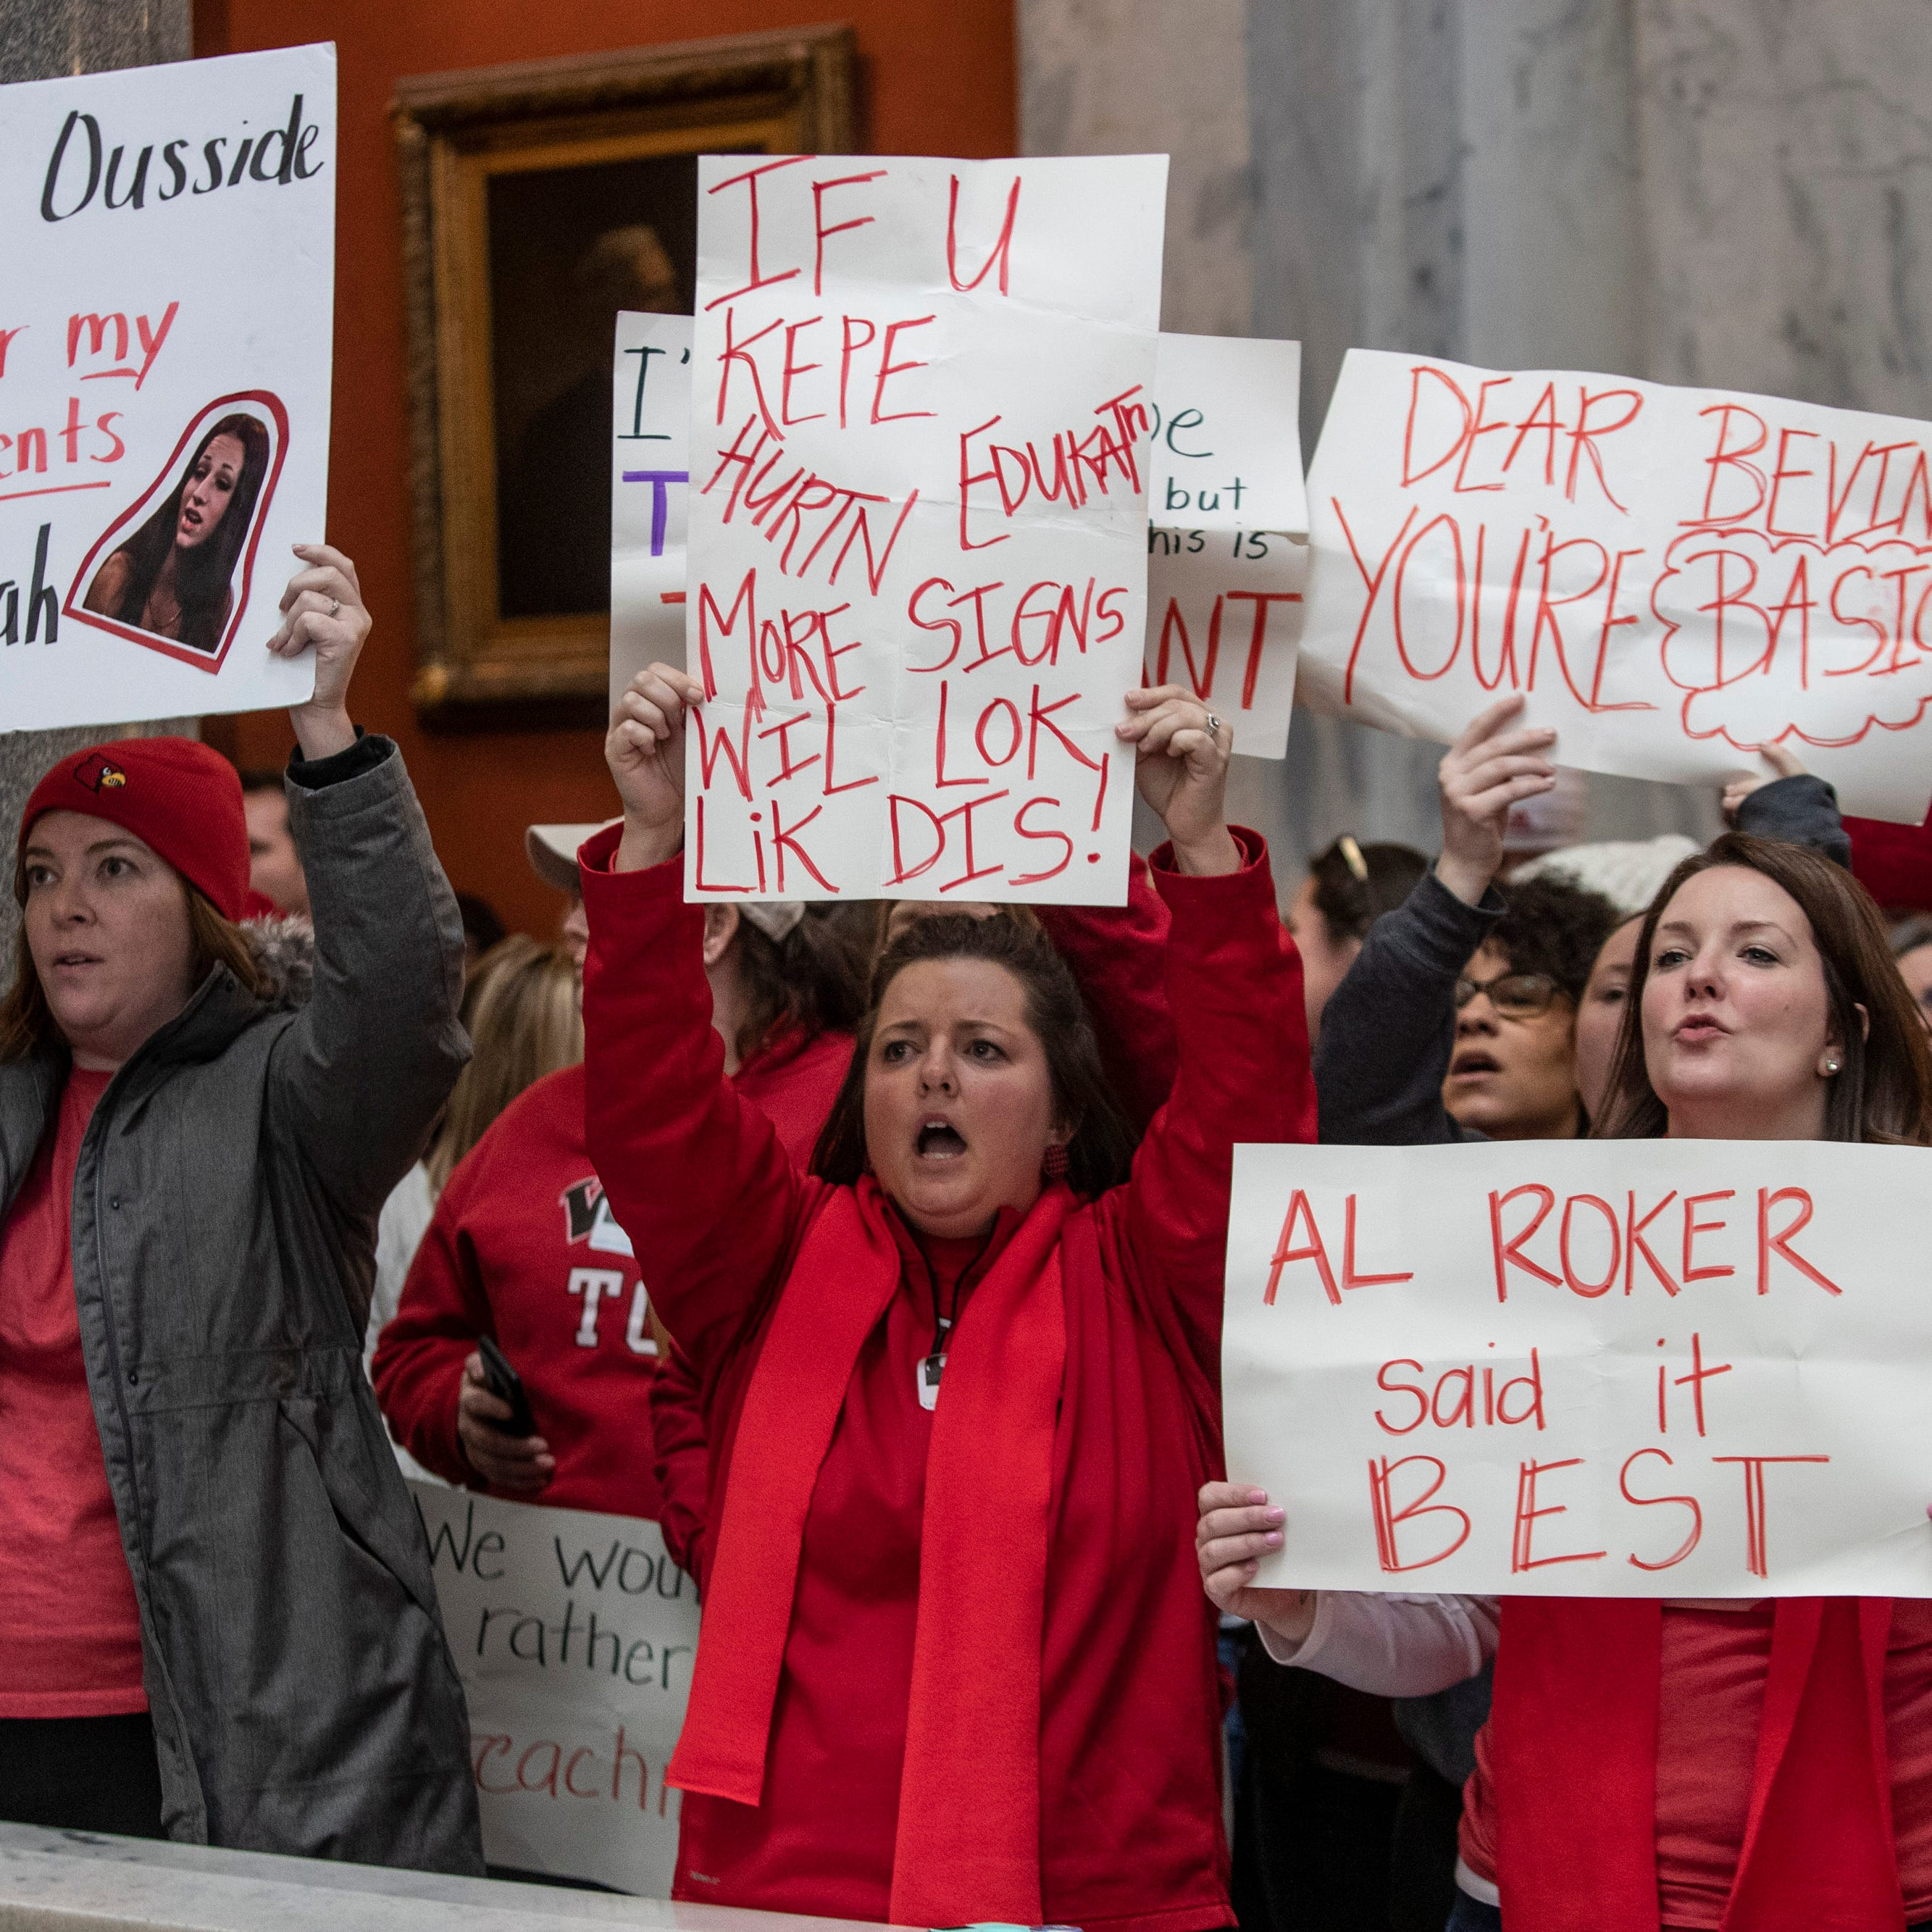 Why did JCPS teachers call in sick? To make sure lawmakers don't pass HB 205